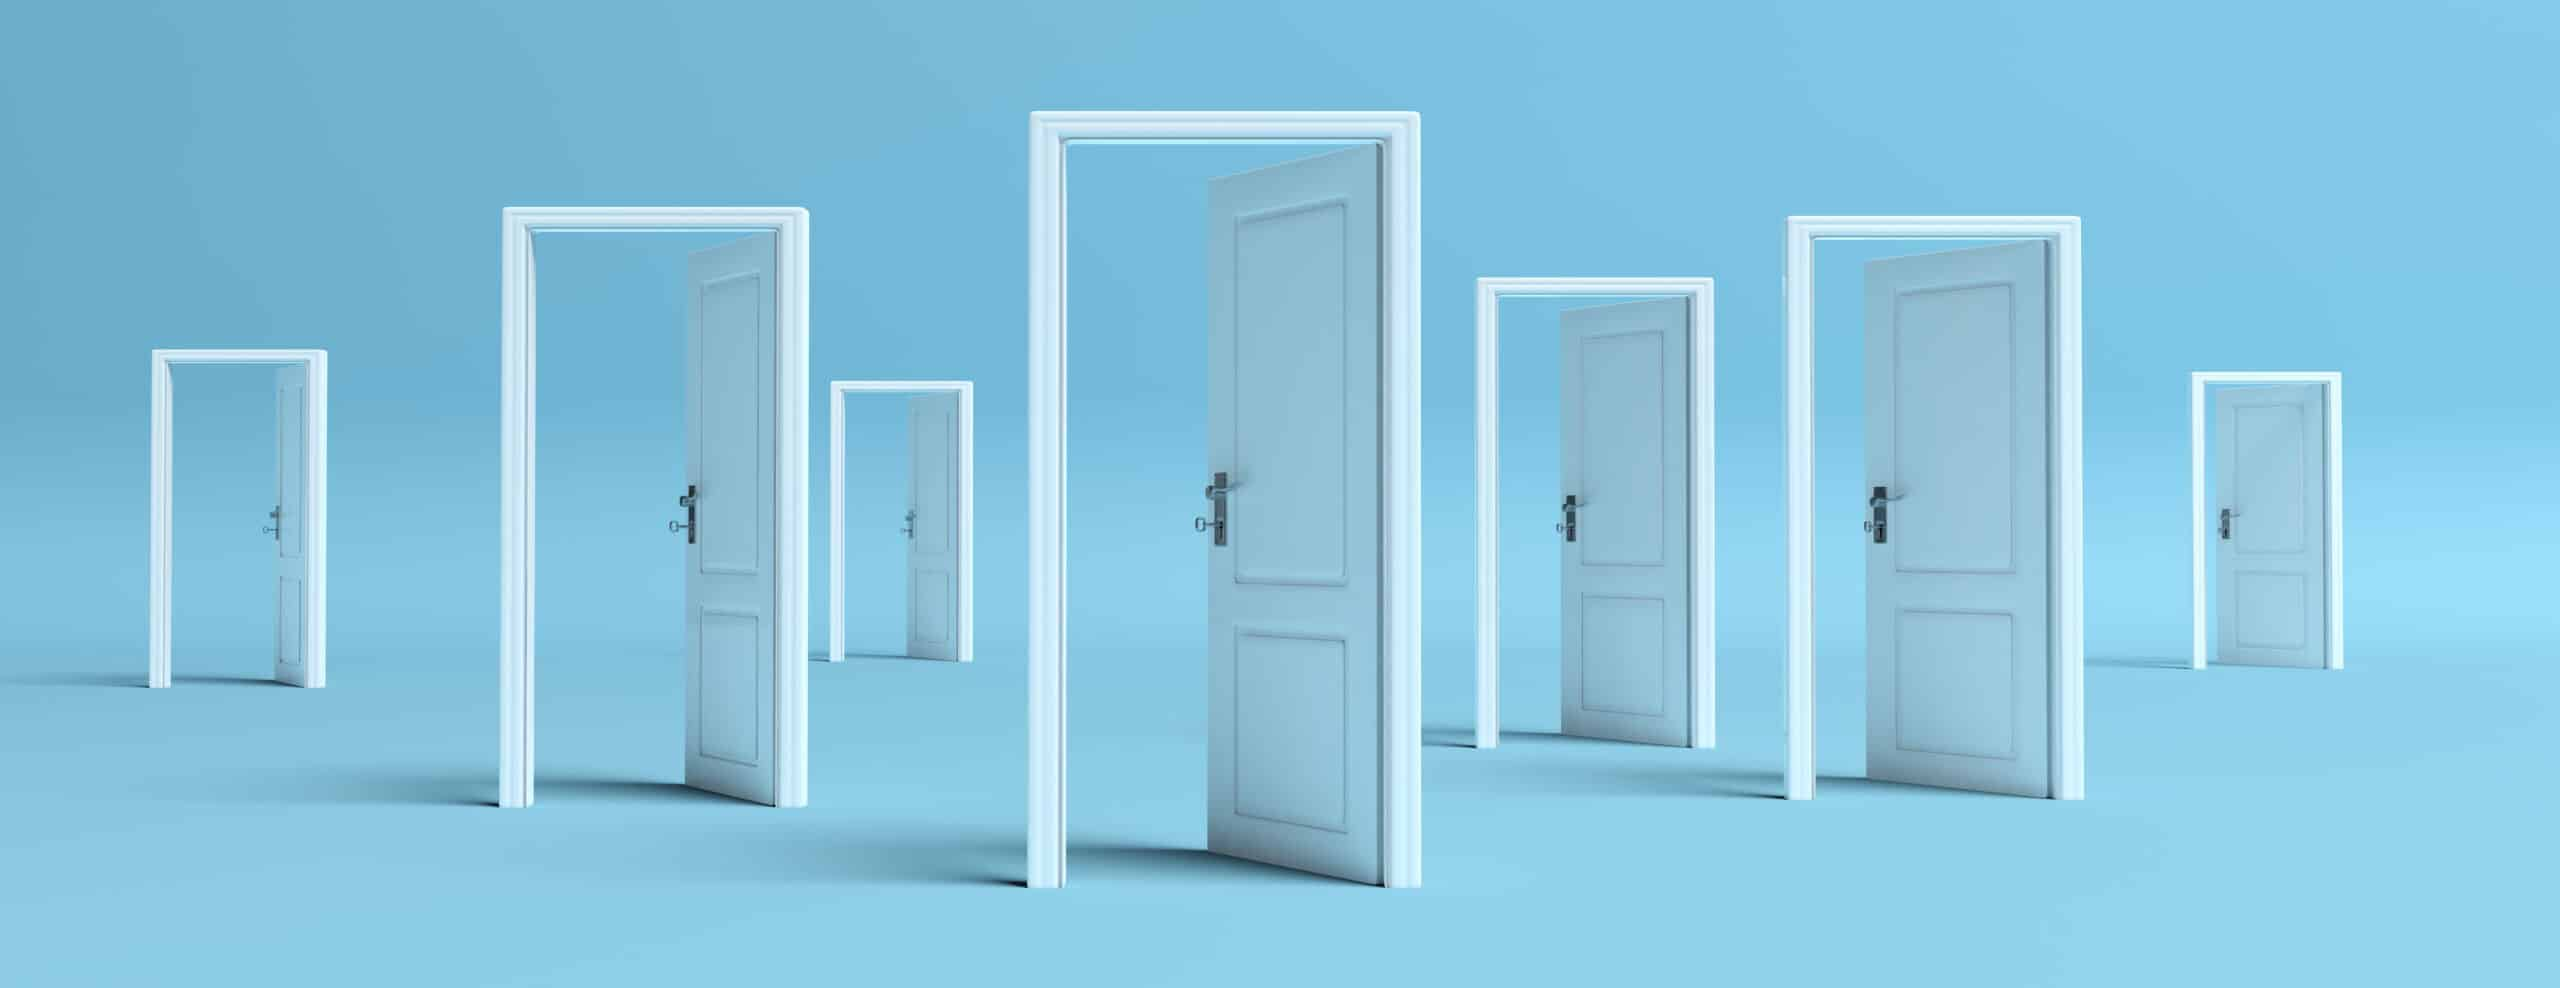 secret to successful business exit strategy